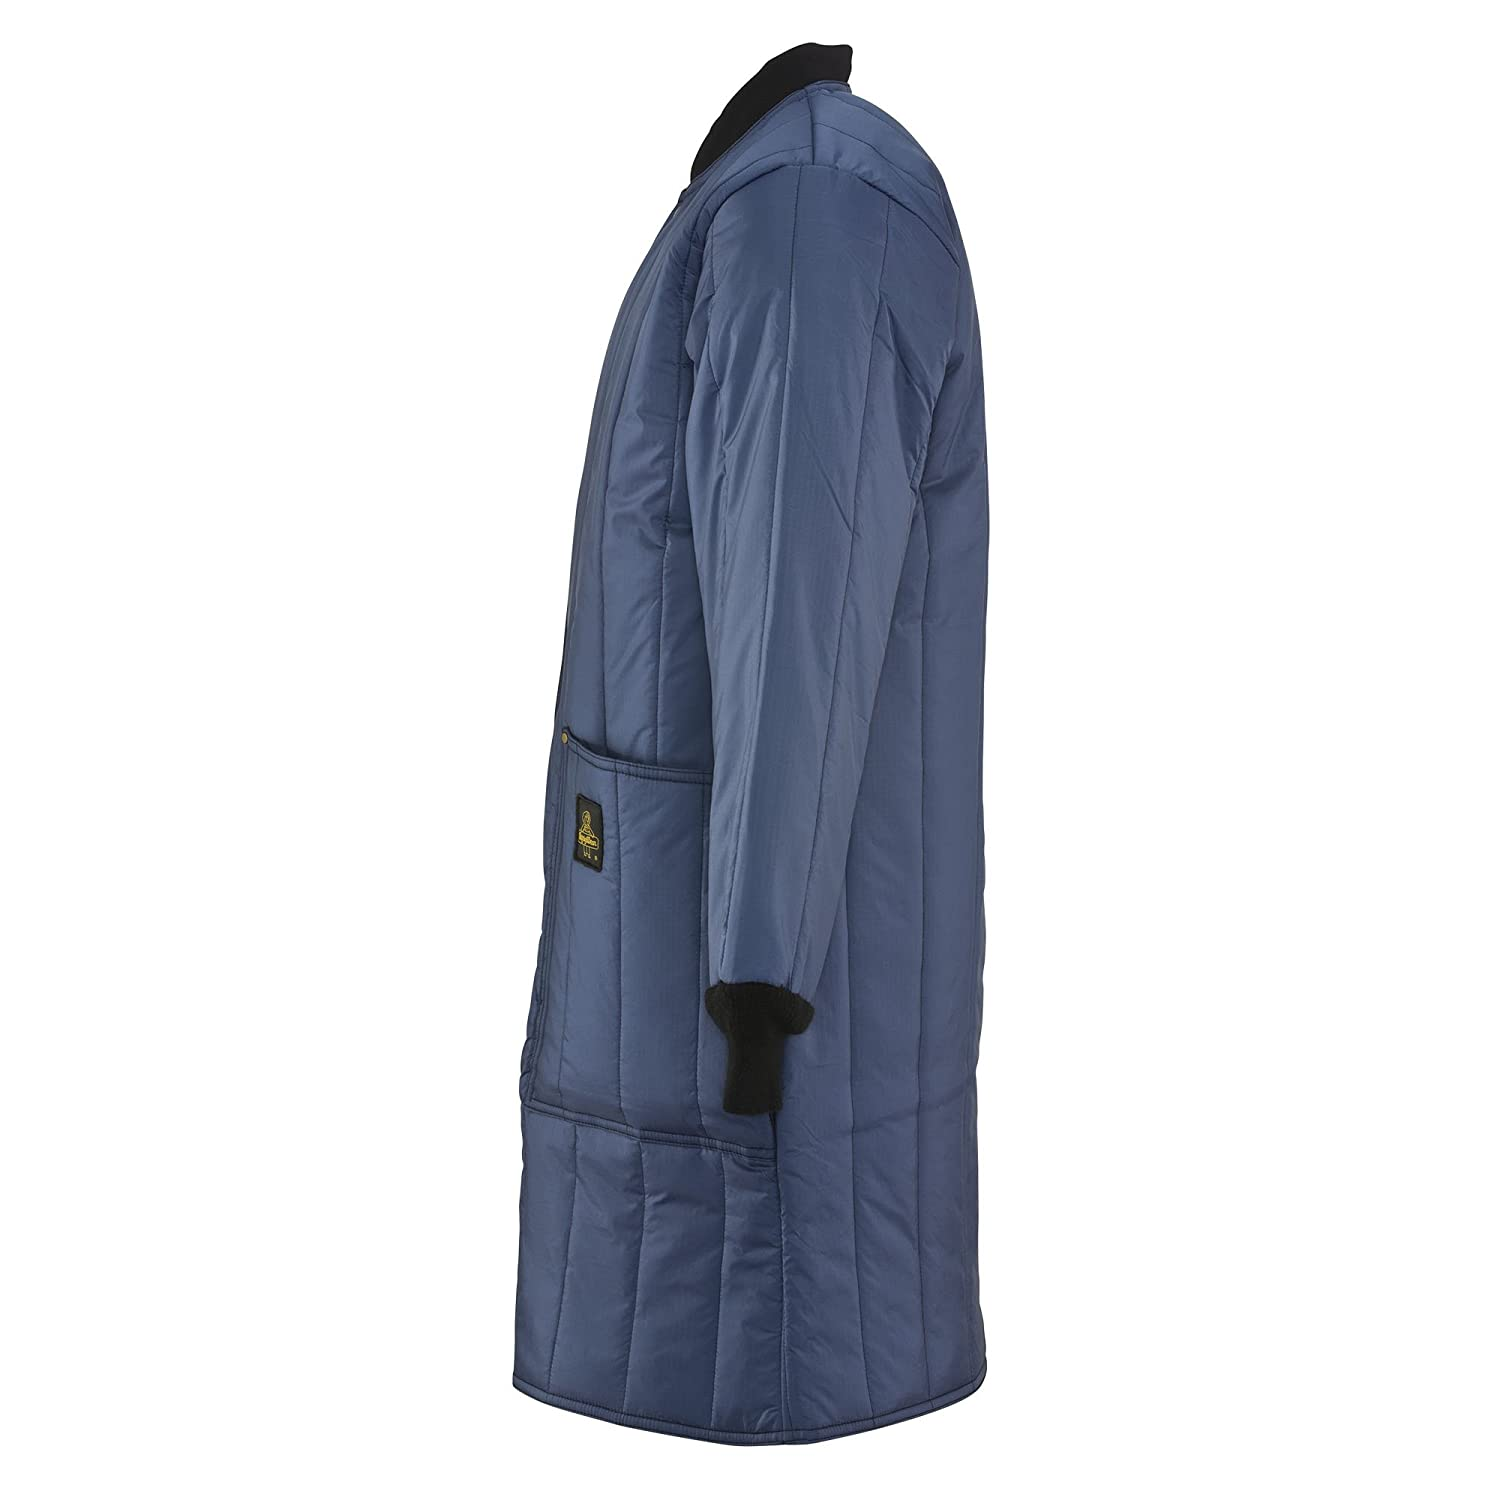 RefrigiWear Mens Insulated Cooler Wear Frock Liner Workwear Coat 0534R